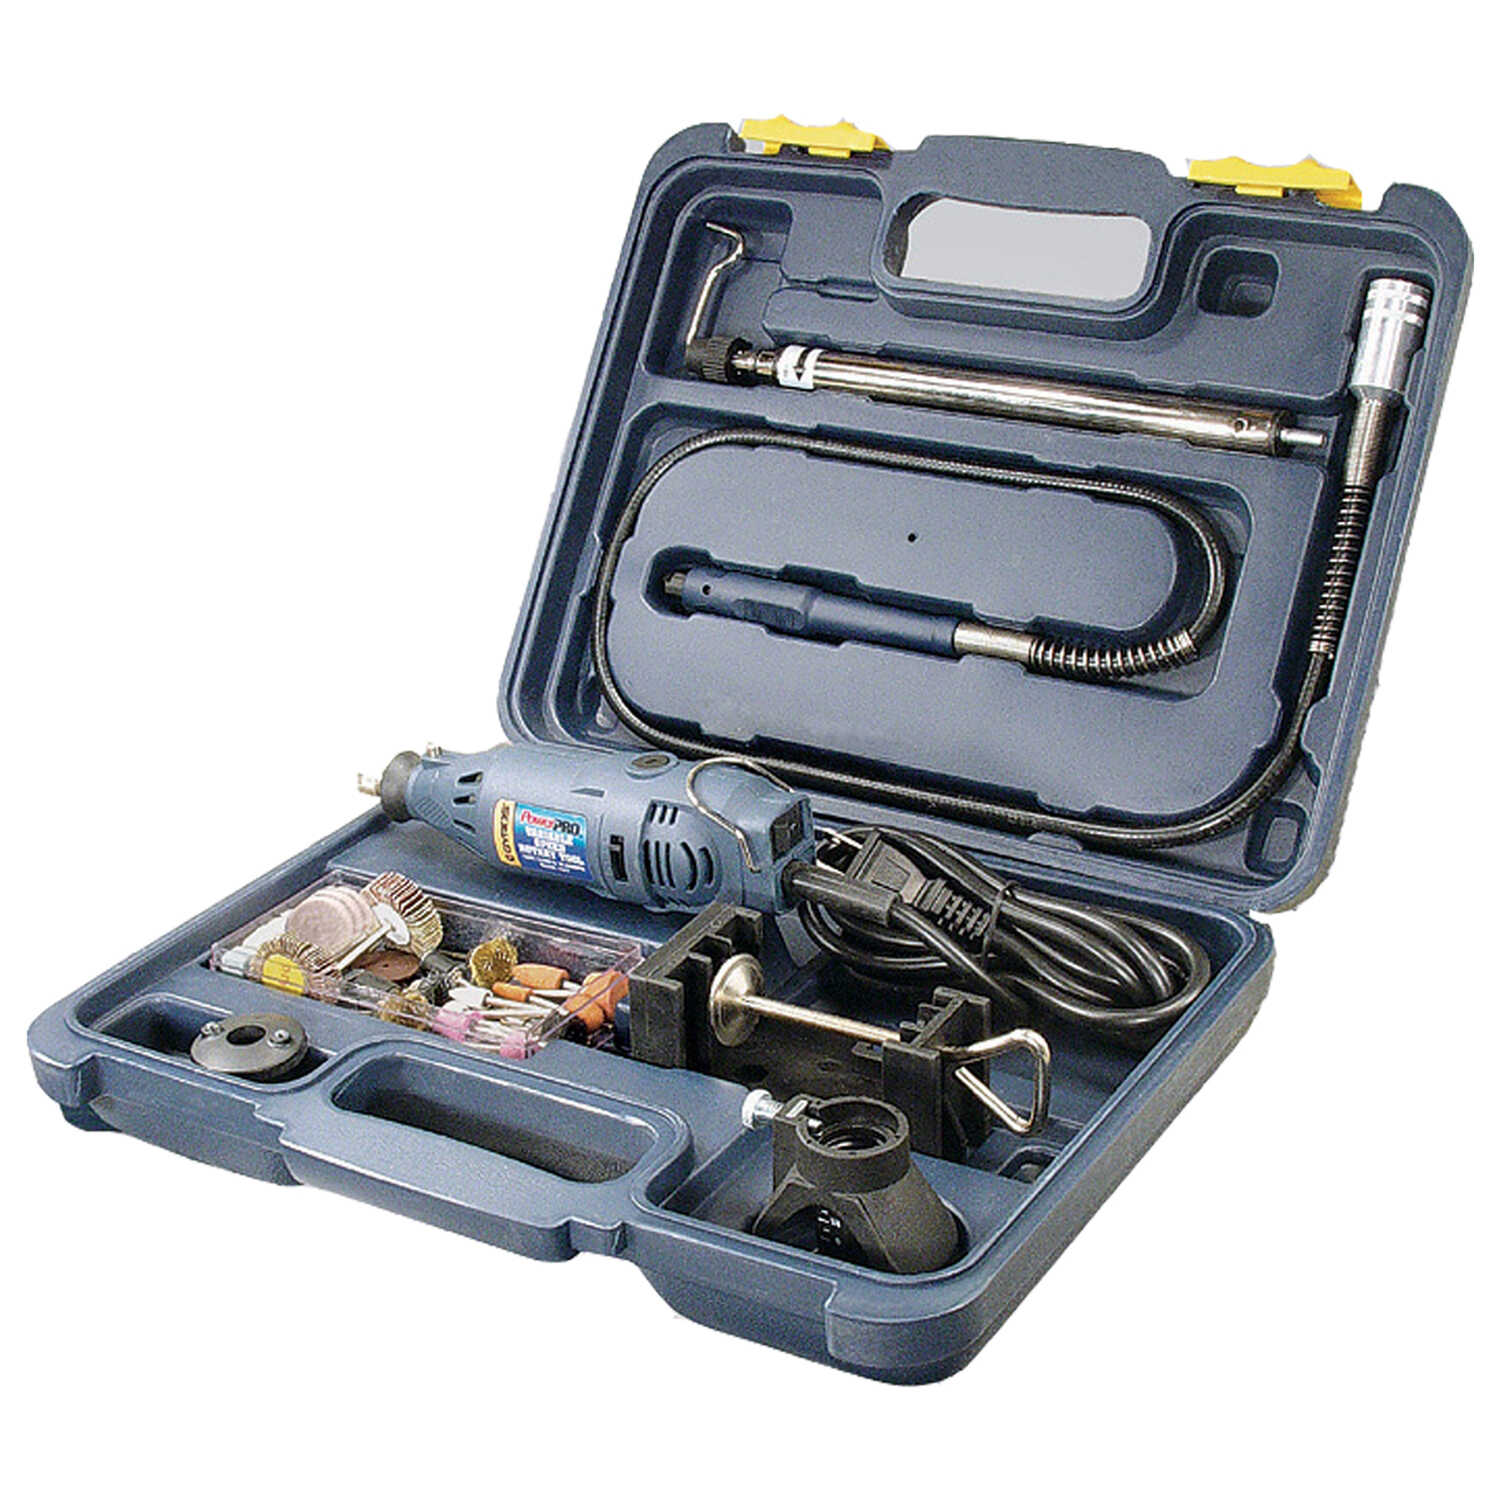 Gyros Tools  Power Pro  1/8 in. Cordless  Rotary Tool Kit  Rotary Tool  Kit 1.2 amps 9.6 volt 35000